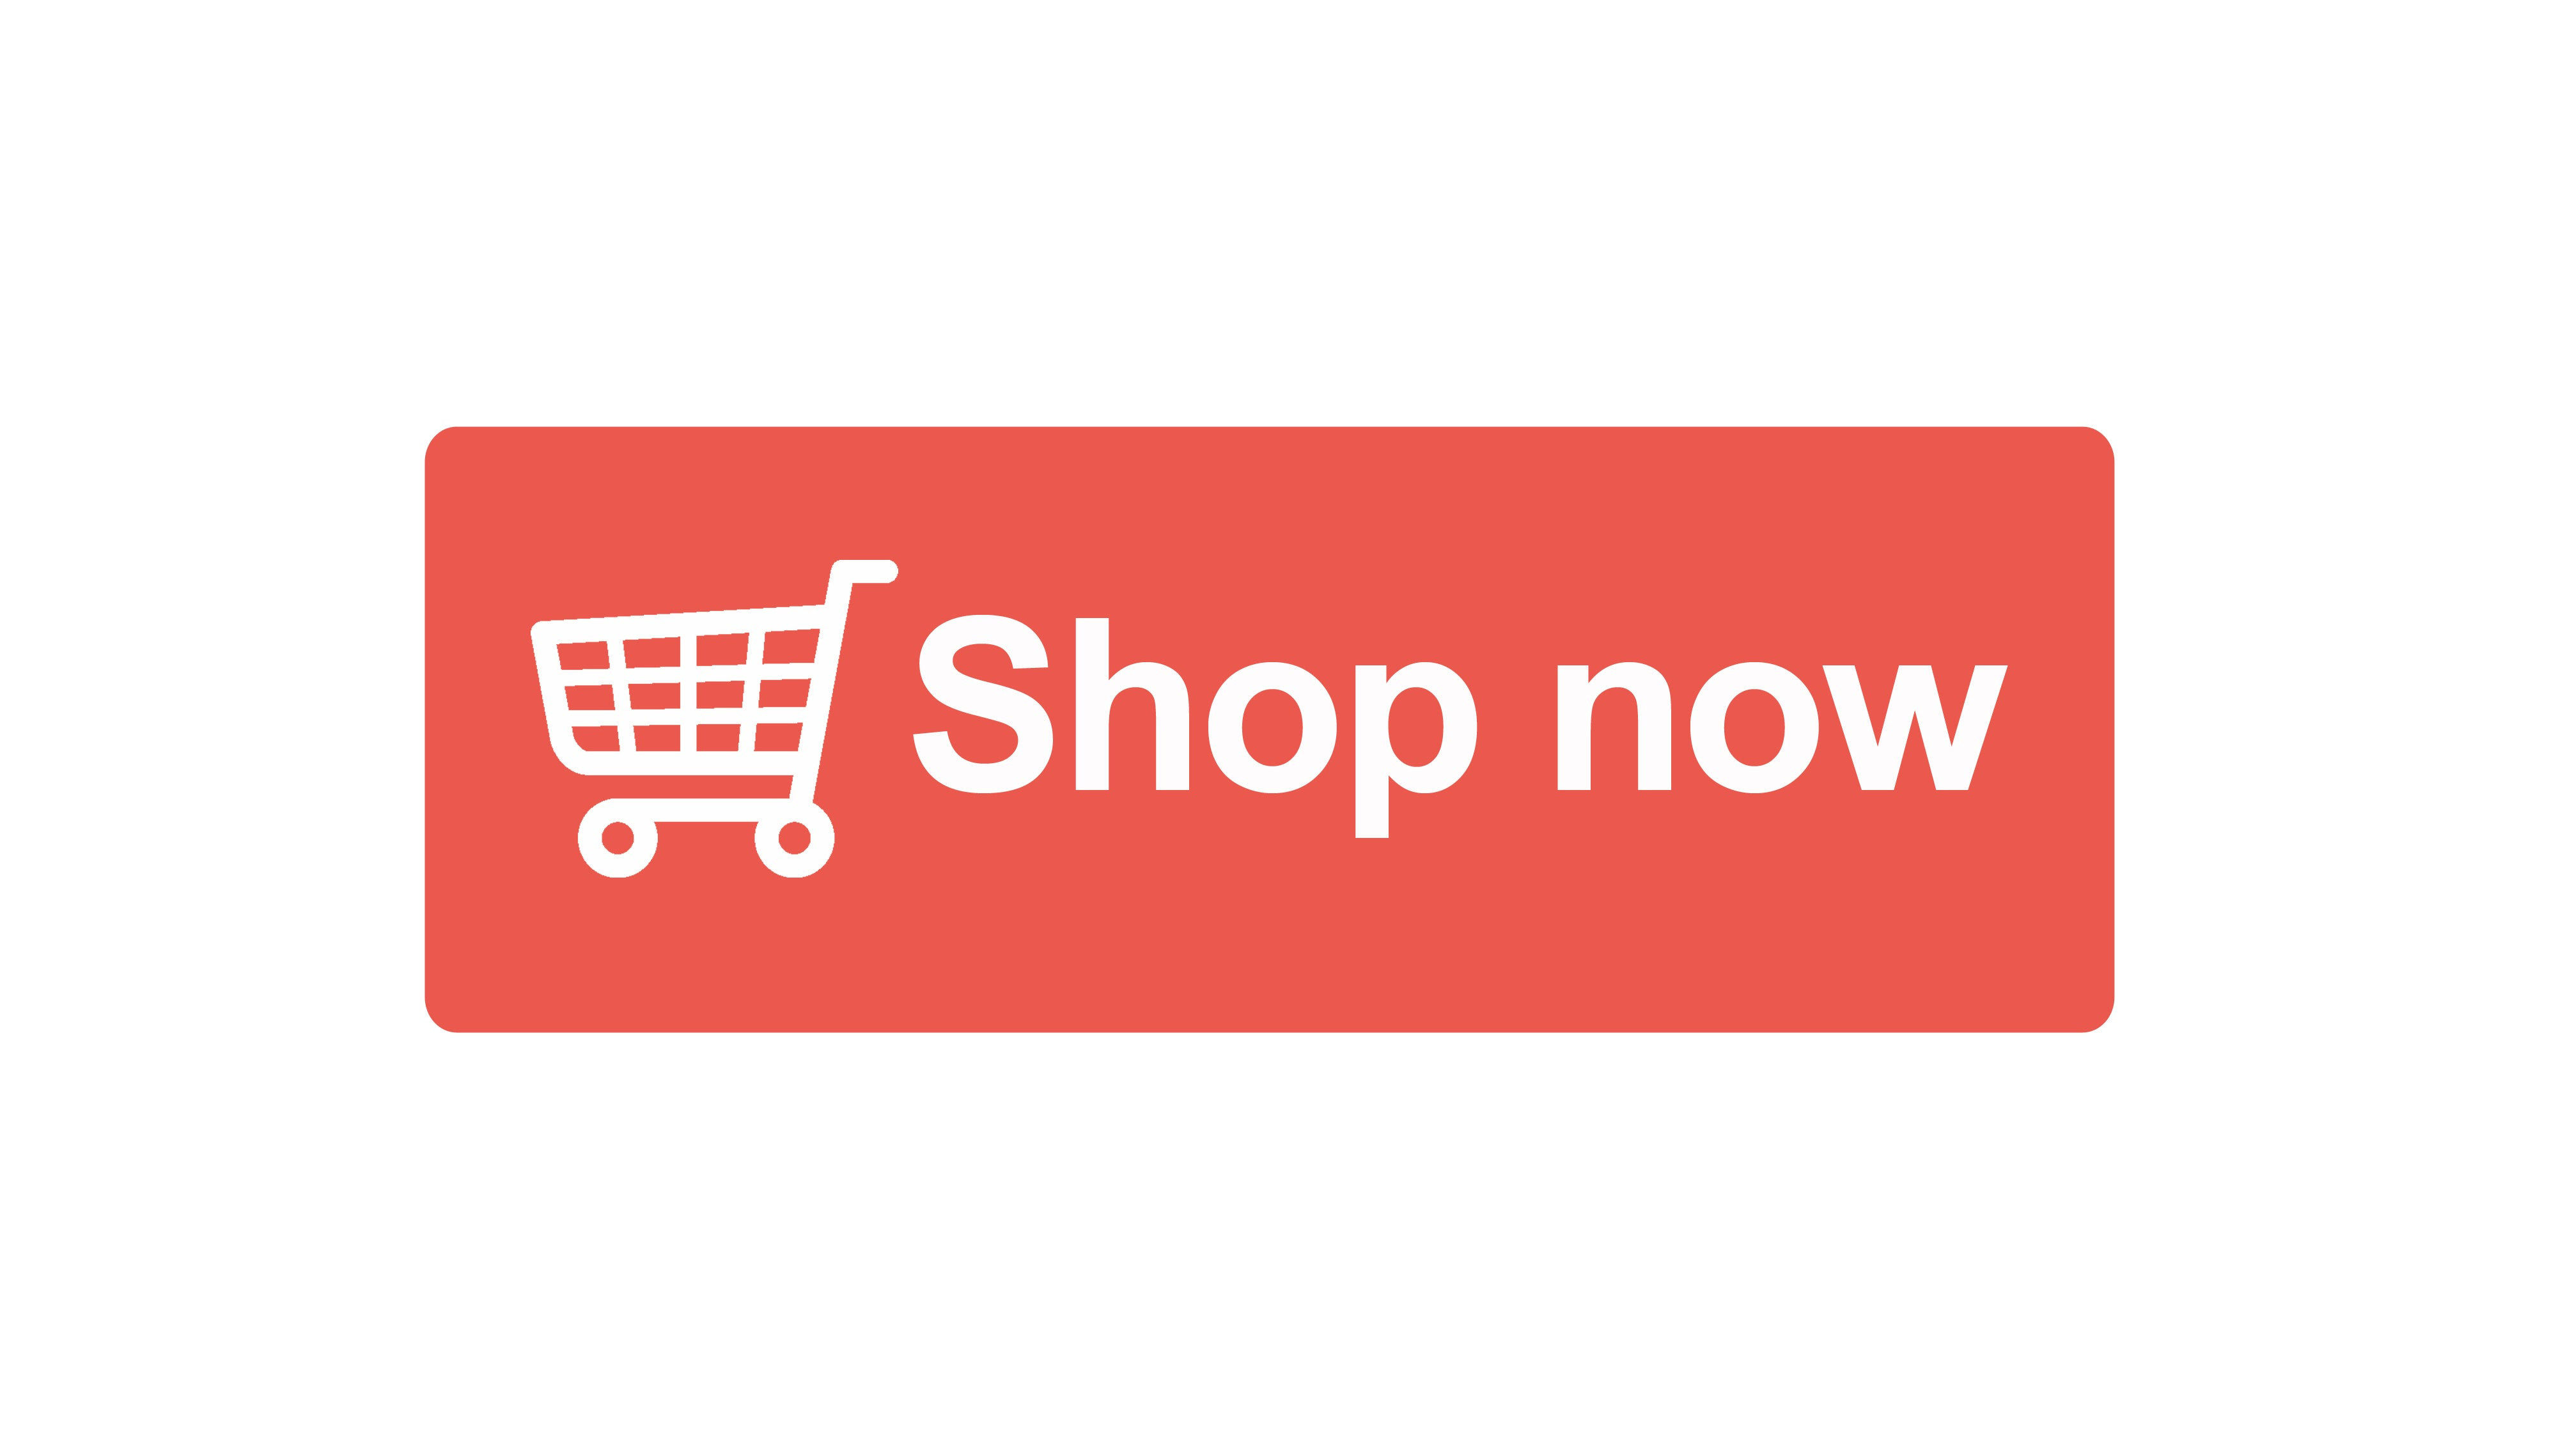 Image of shop now icon